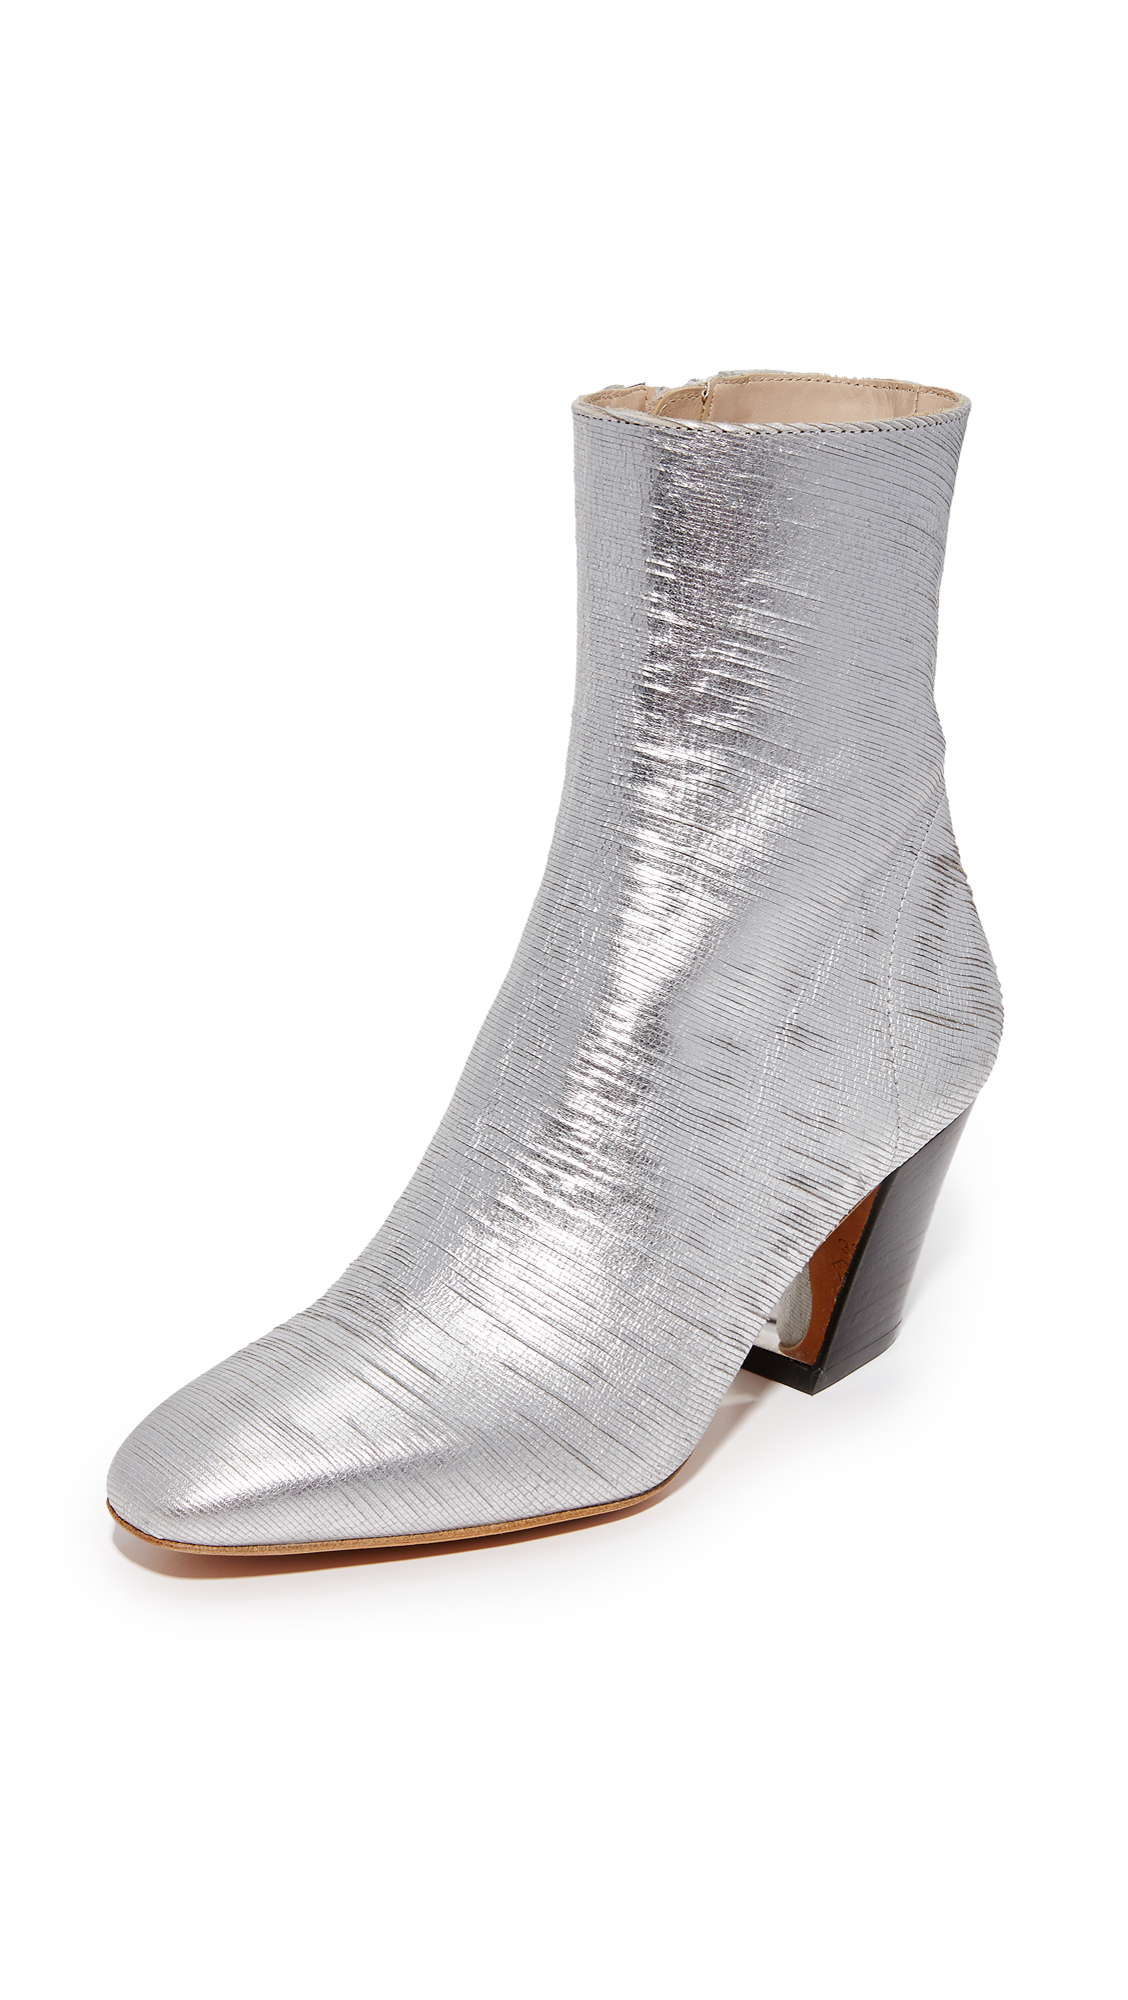 Distressing adds a unique texture to these bold, metallic IRO booties. Hidden zip secures the side. Sculpted, stacked heel. Leather sole. Leather: Goatskin. Made in Portugal. This item cannot be gift boxed. Measurements Heel: 2.5in / 65mm